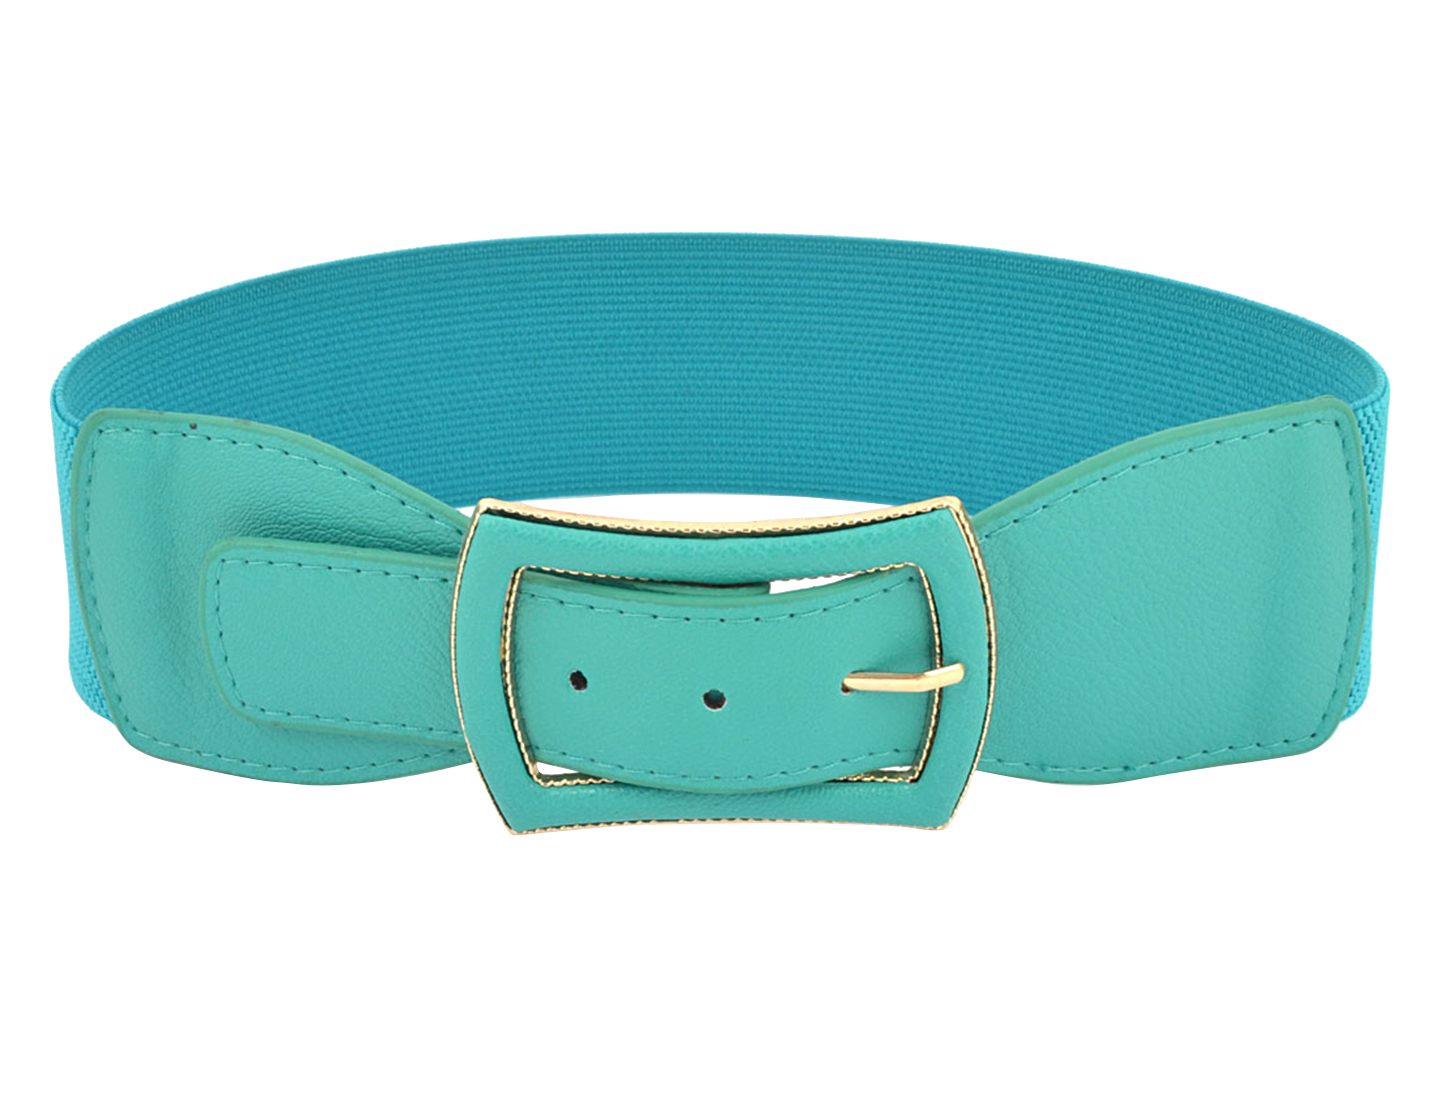 Lady Single Pin Buckle Faux Leather 6cm Width Stretchy Waist Belt Teal Blue